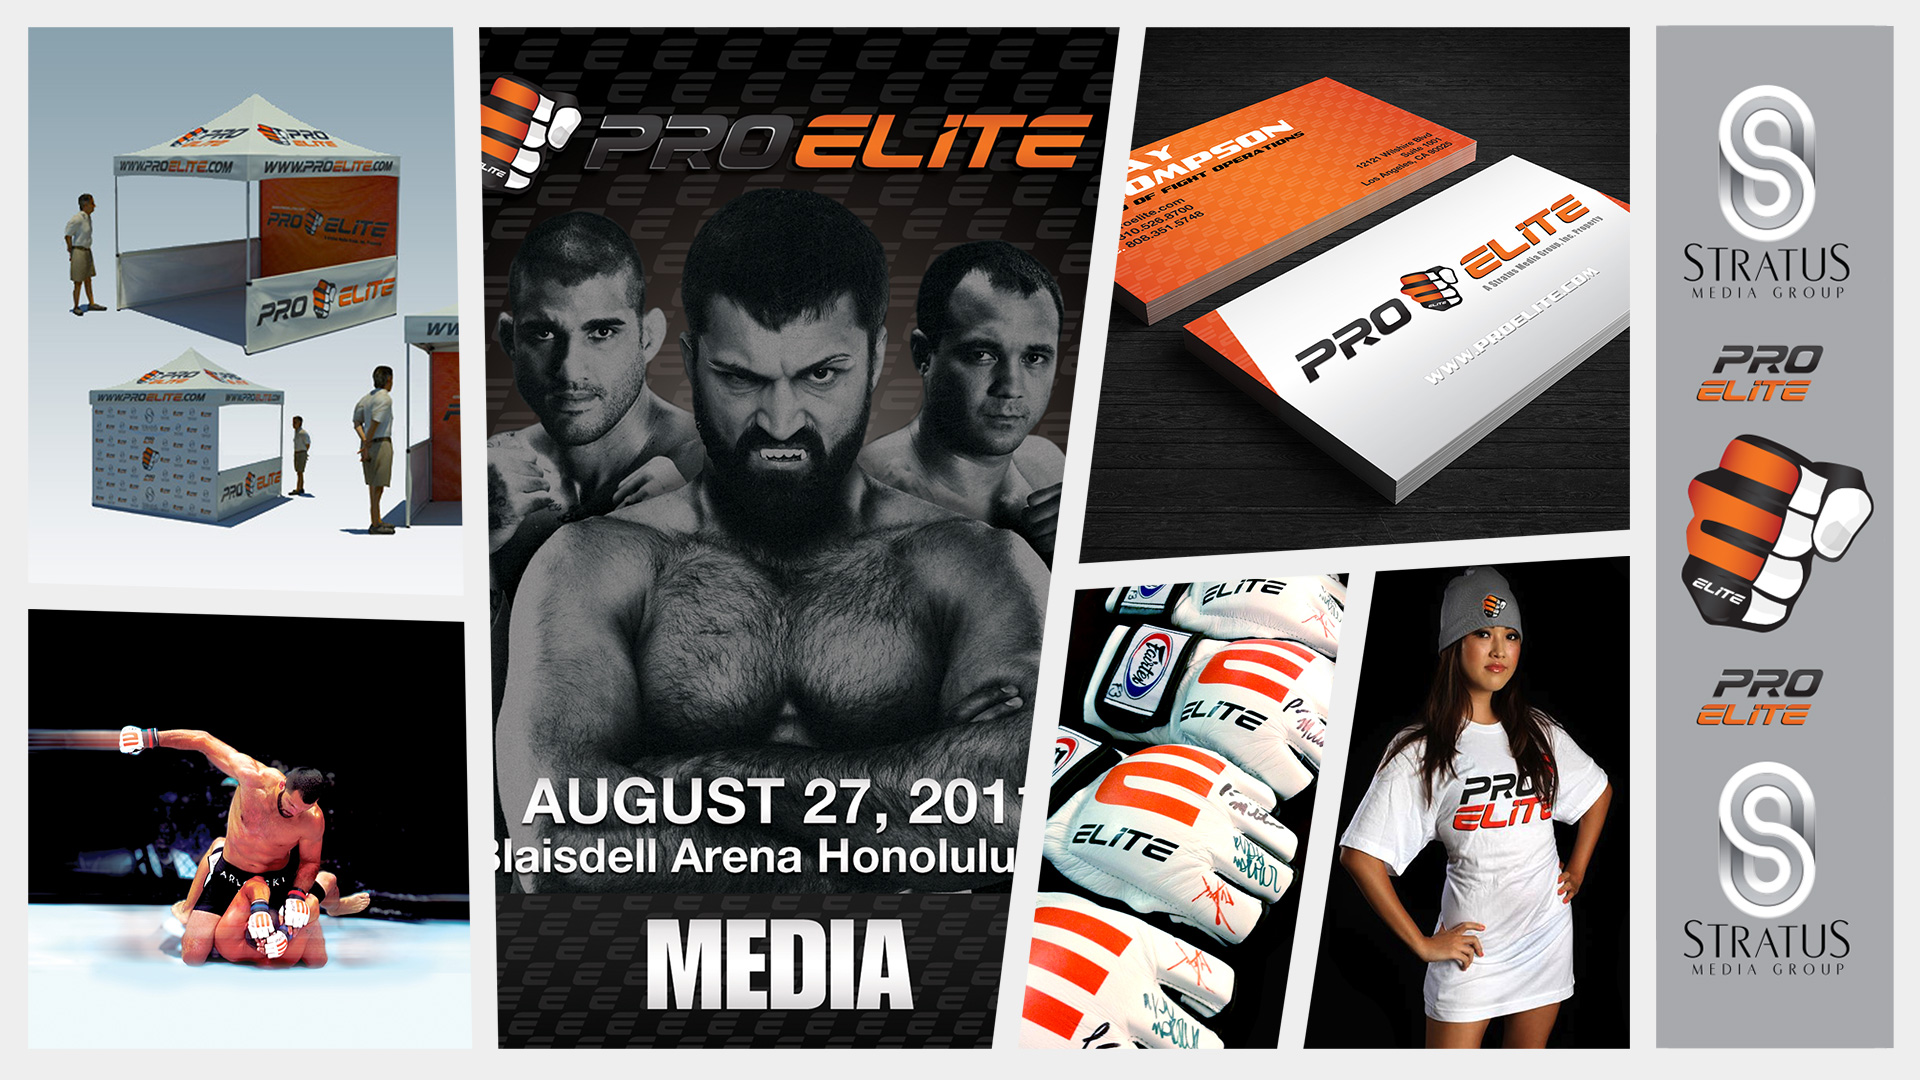 proelite brand identity design mixed martial arts mma